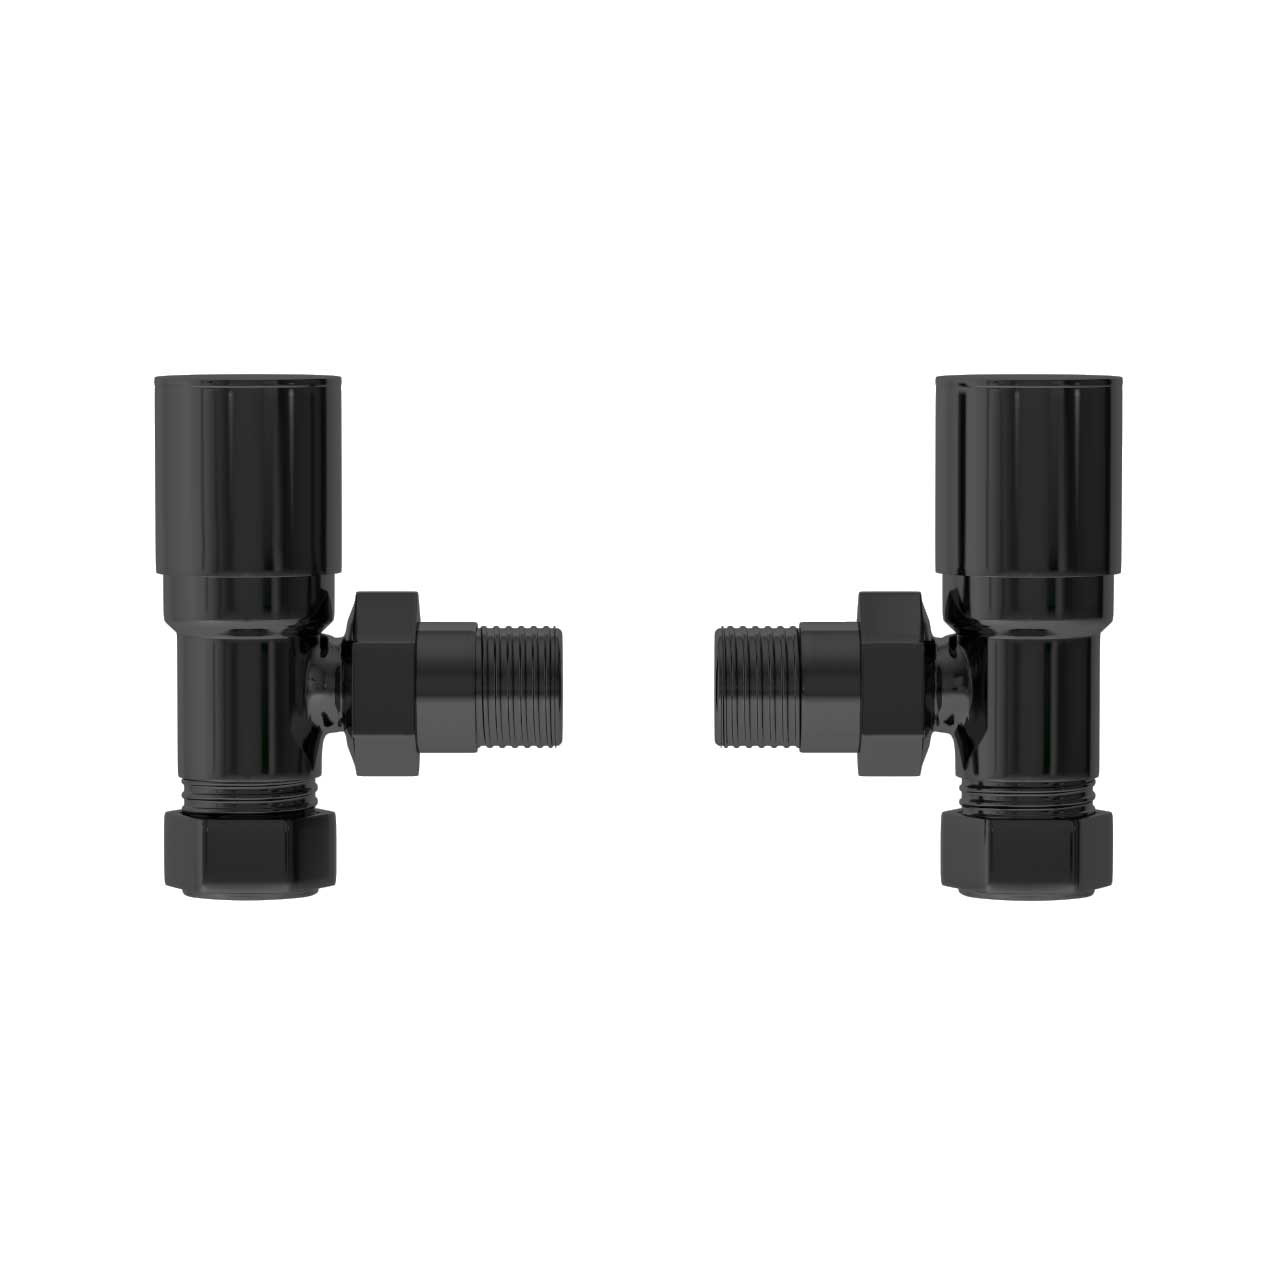 Black Nickel Round Angled Radiator Valves